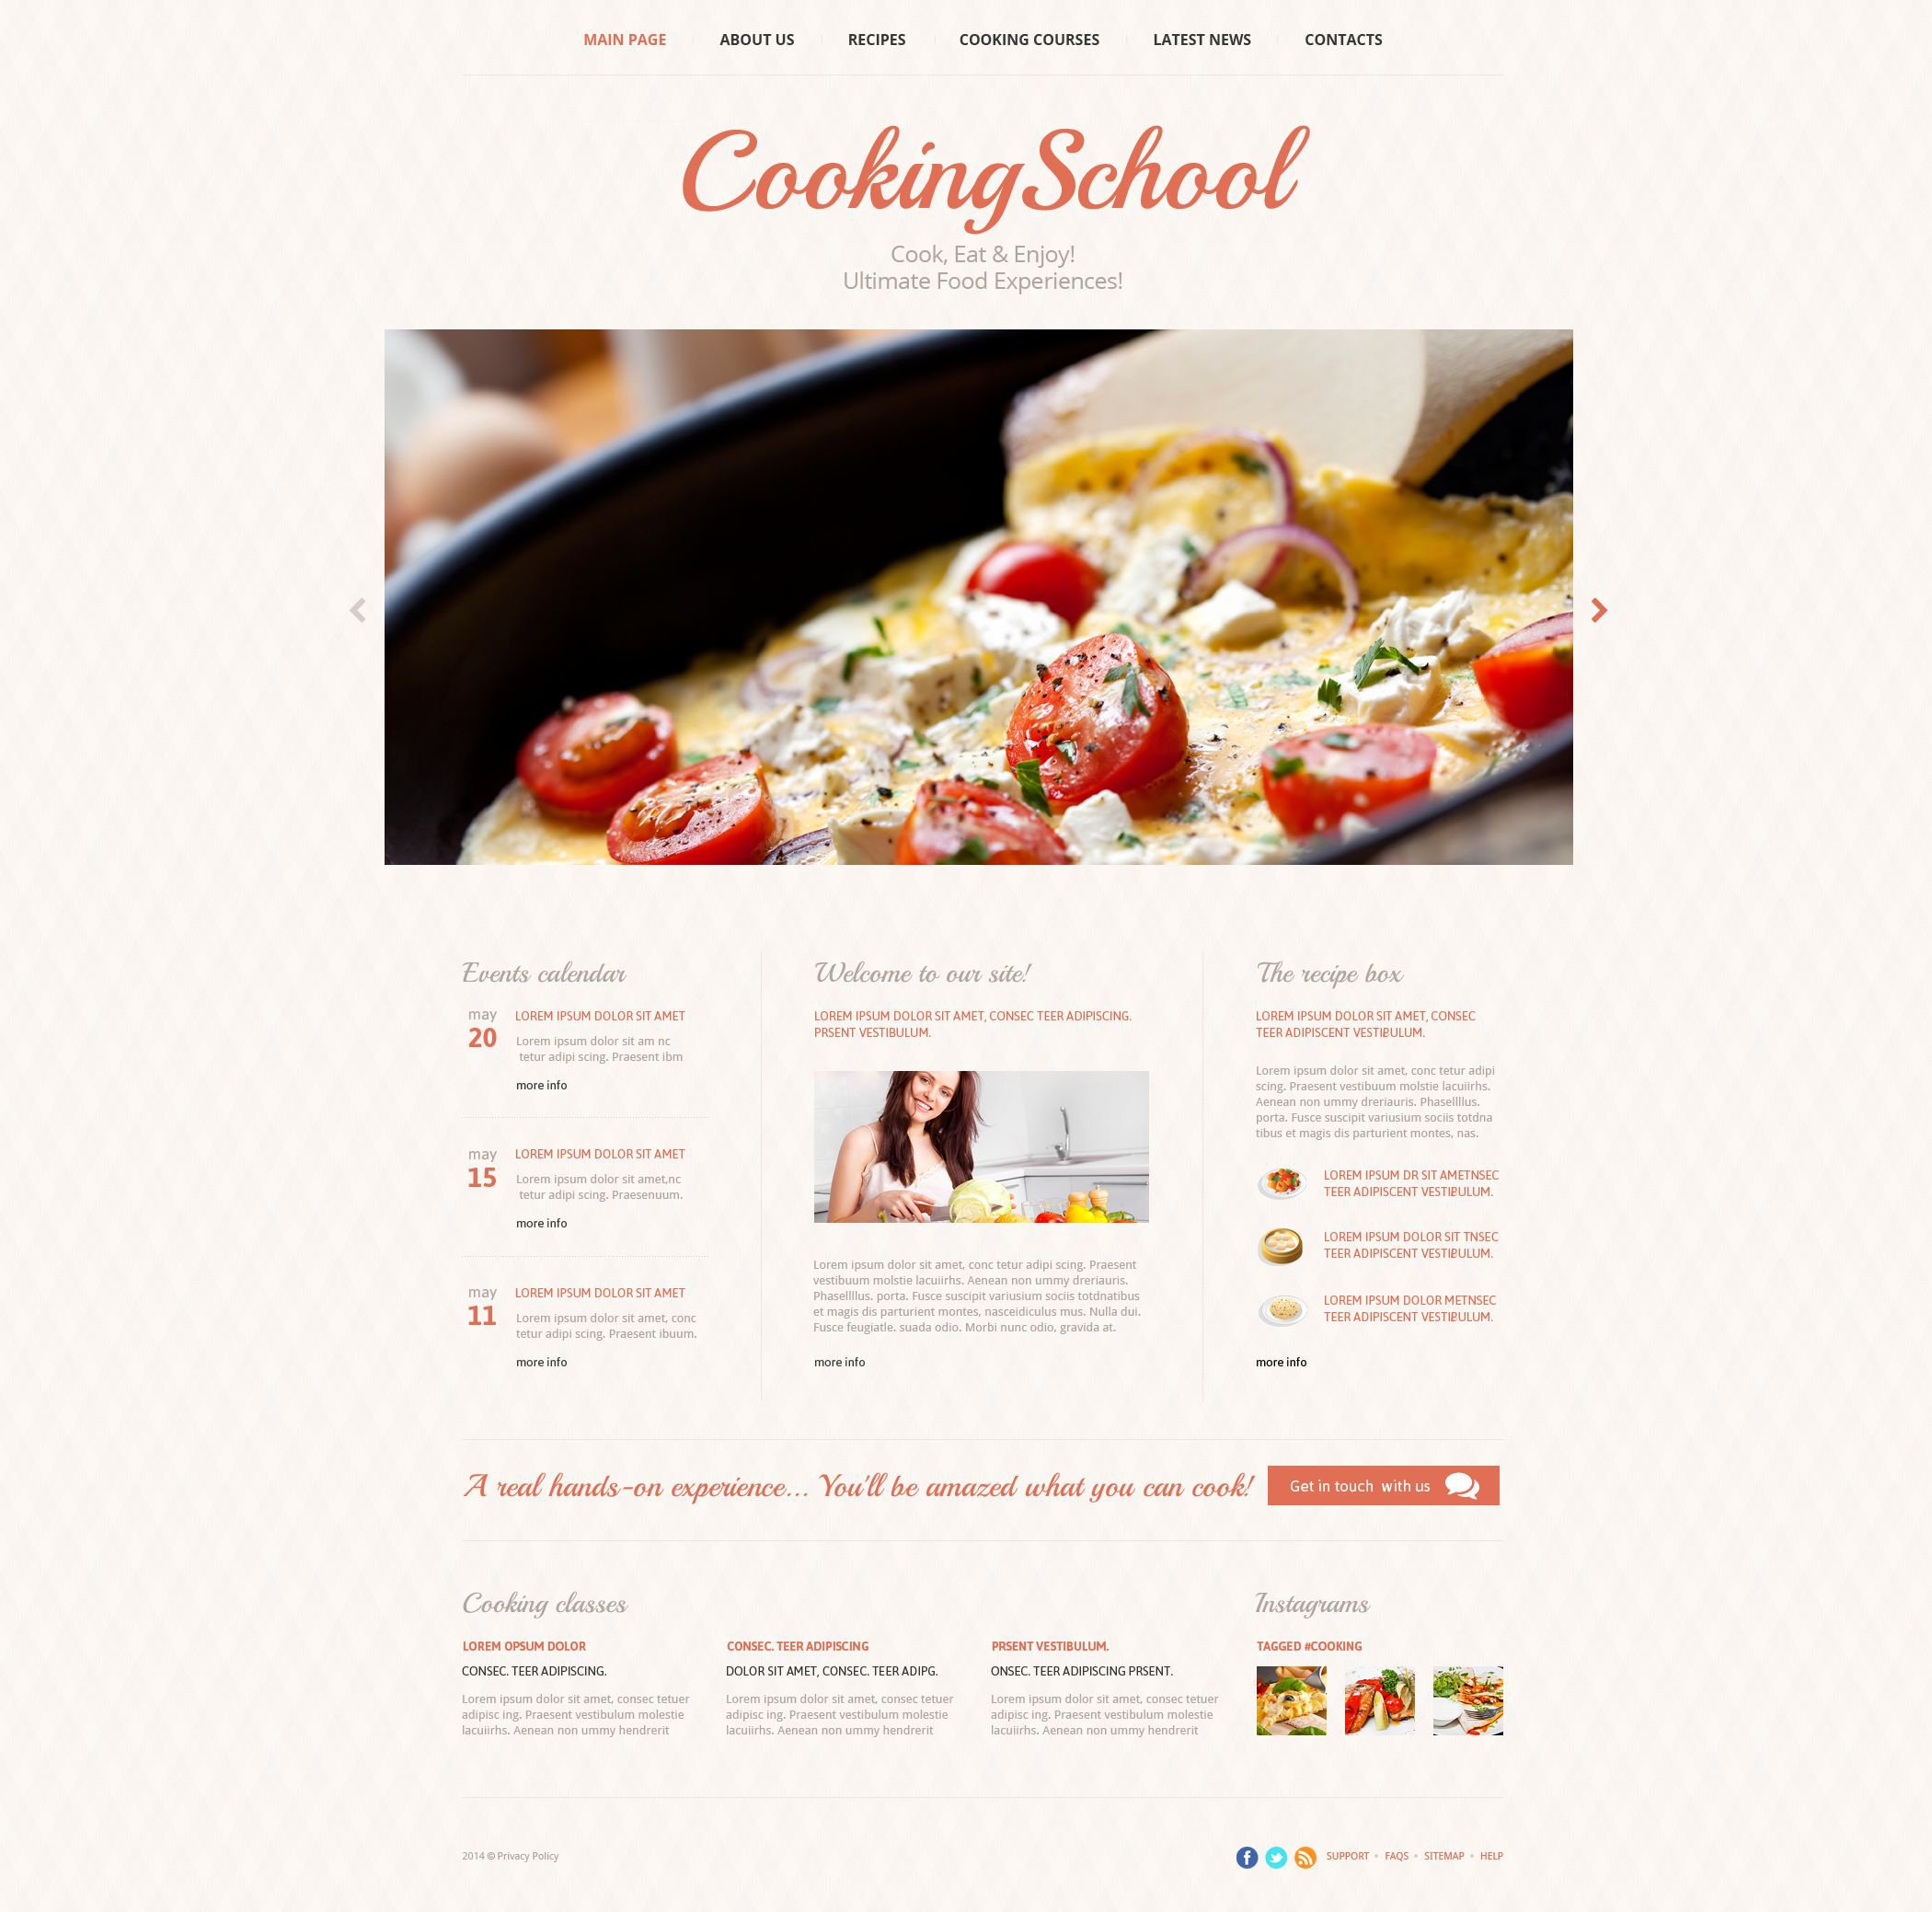 The Cooking School Responsive Javascript Animated Design 52979, one of the best website templates of its kind (education, most popular), also known as cooking school website template, cook website template, culinary website template, academy website template, education website template, prices website template, classes website template, chef website template, instructor website template, instructors website template, calendar website template, courses website template, food website template, dish website template, dishes and related with cooking school, cook, culinary, academy, education, prices, classes, chef, instructor, instructors, calendar, courses, food, dish, dishes, etc.